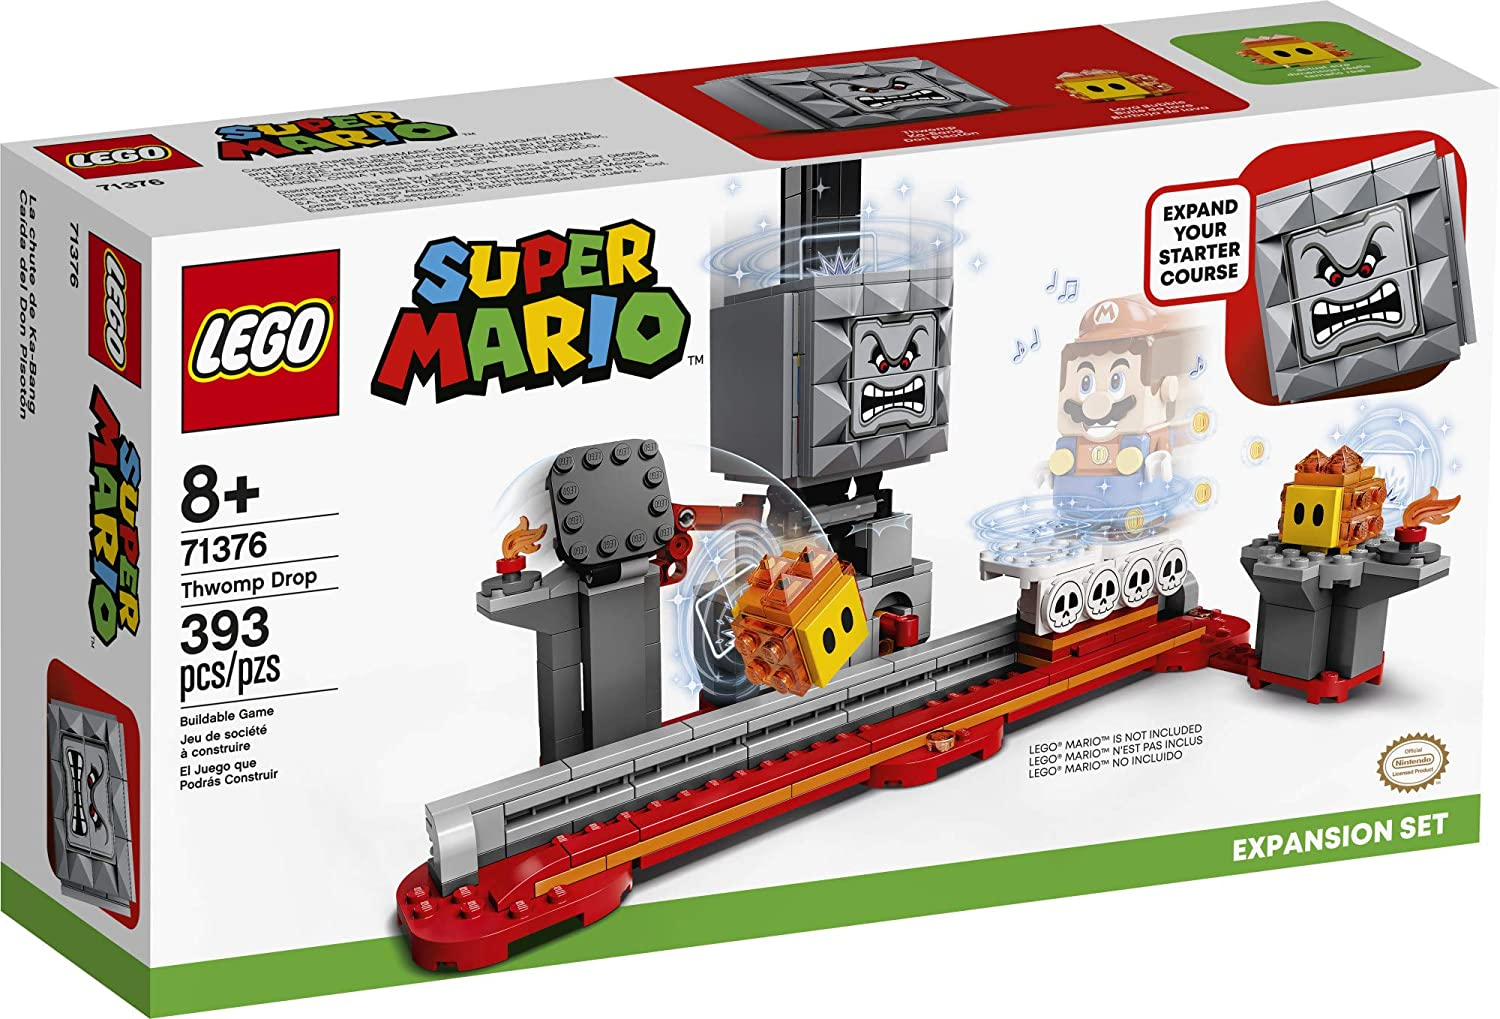 393 Pieces 71360 New 2020 LEGO Super Mario Thwomp Drop Expansion Set 71376 Building Kit; Collectible Playset for Creative Kids to Add New Levels to Their Super Mario Starter Course Set